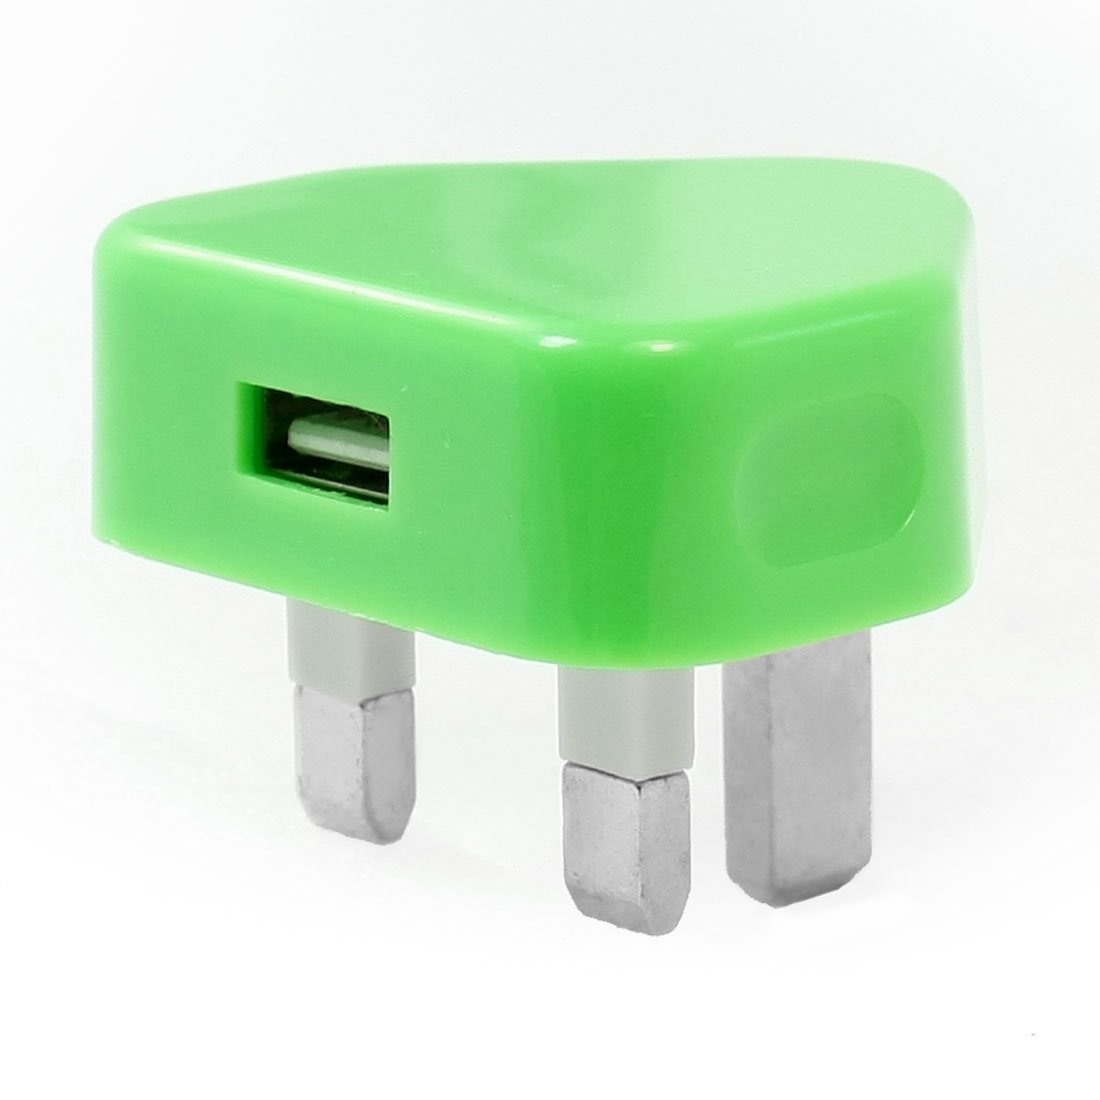 Smartphone Plastic UK Plug 100-240V AC to USB Charger Adapter Bright Green